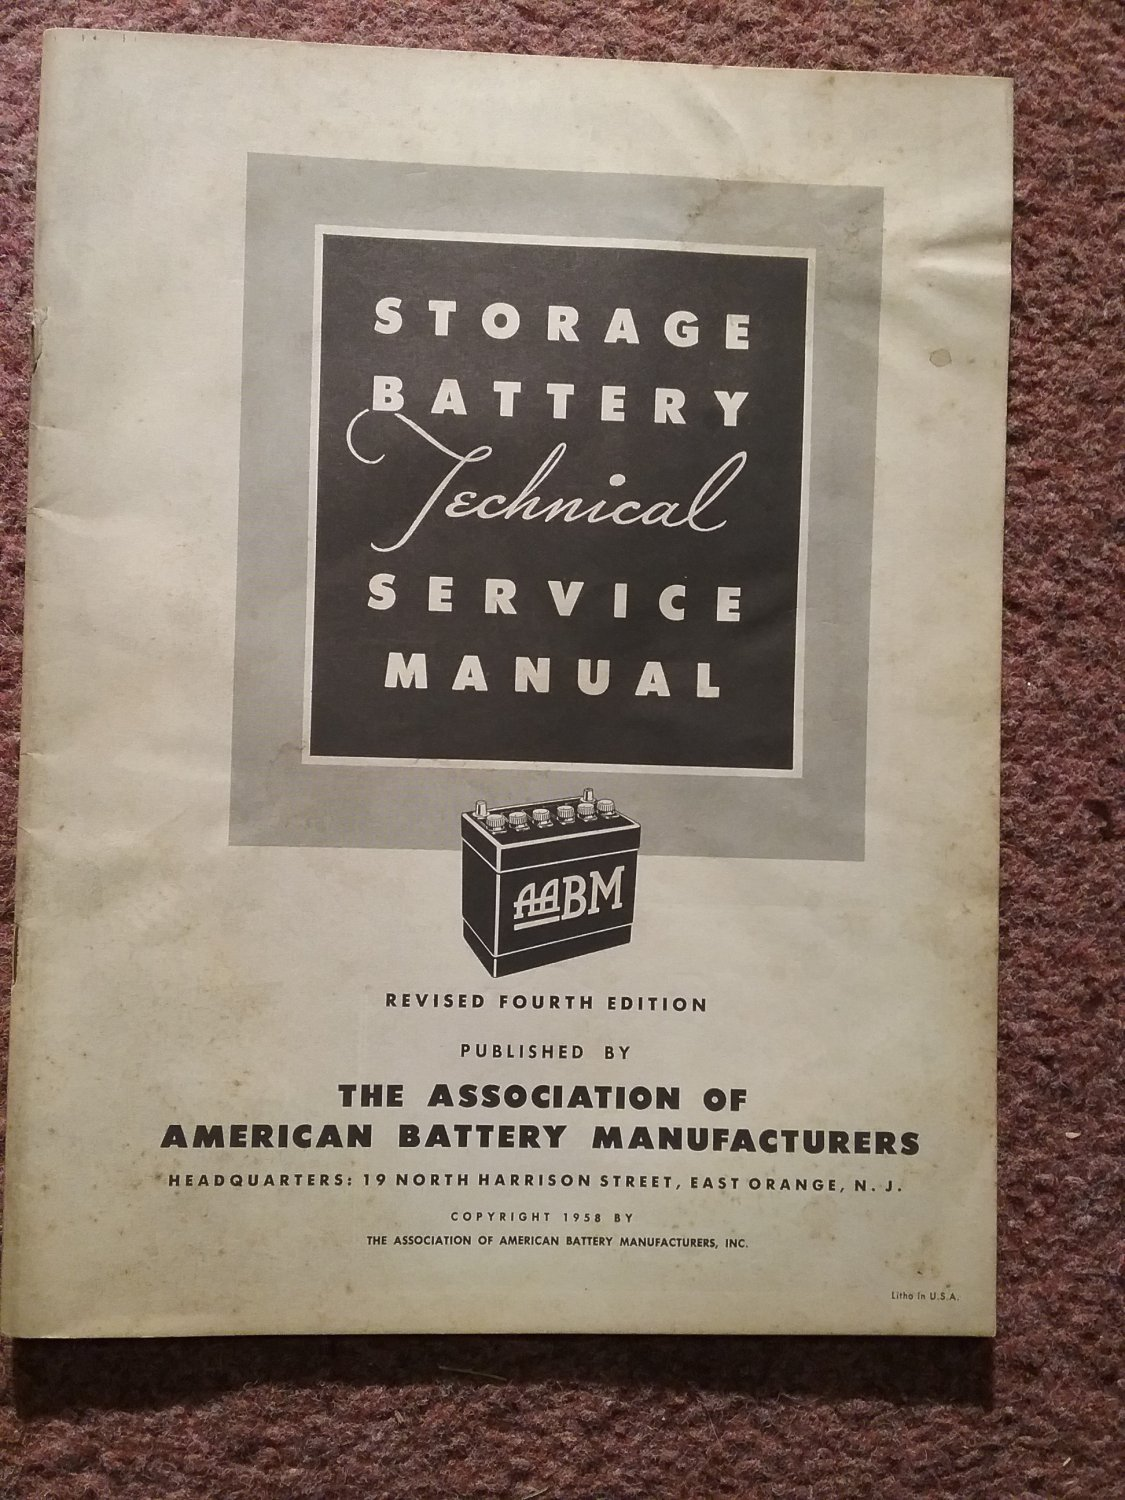 Vintage 1958 Storage Batteryt Technical Service Manual 070716118